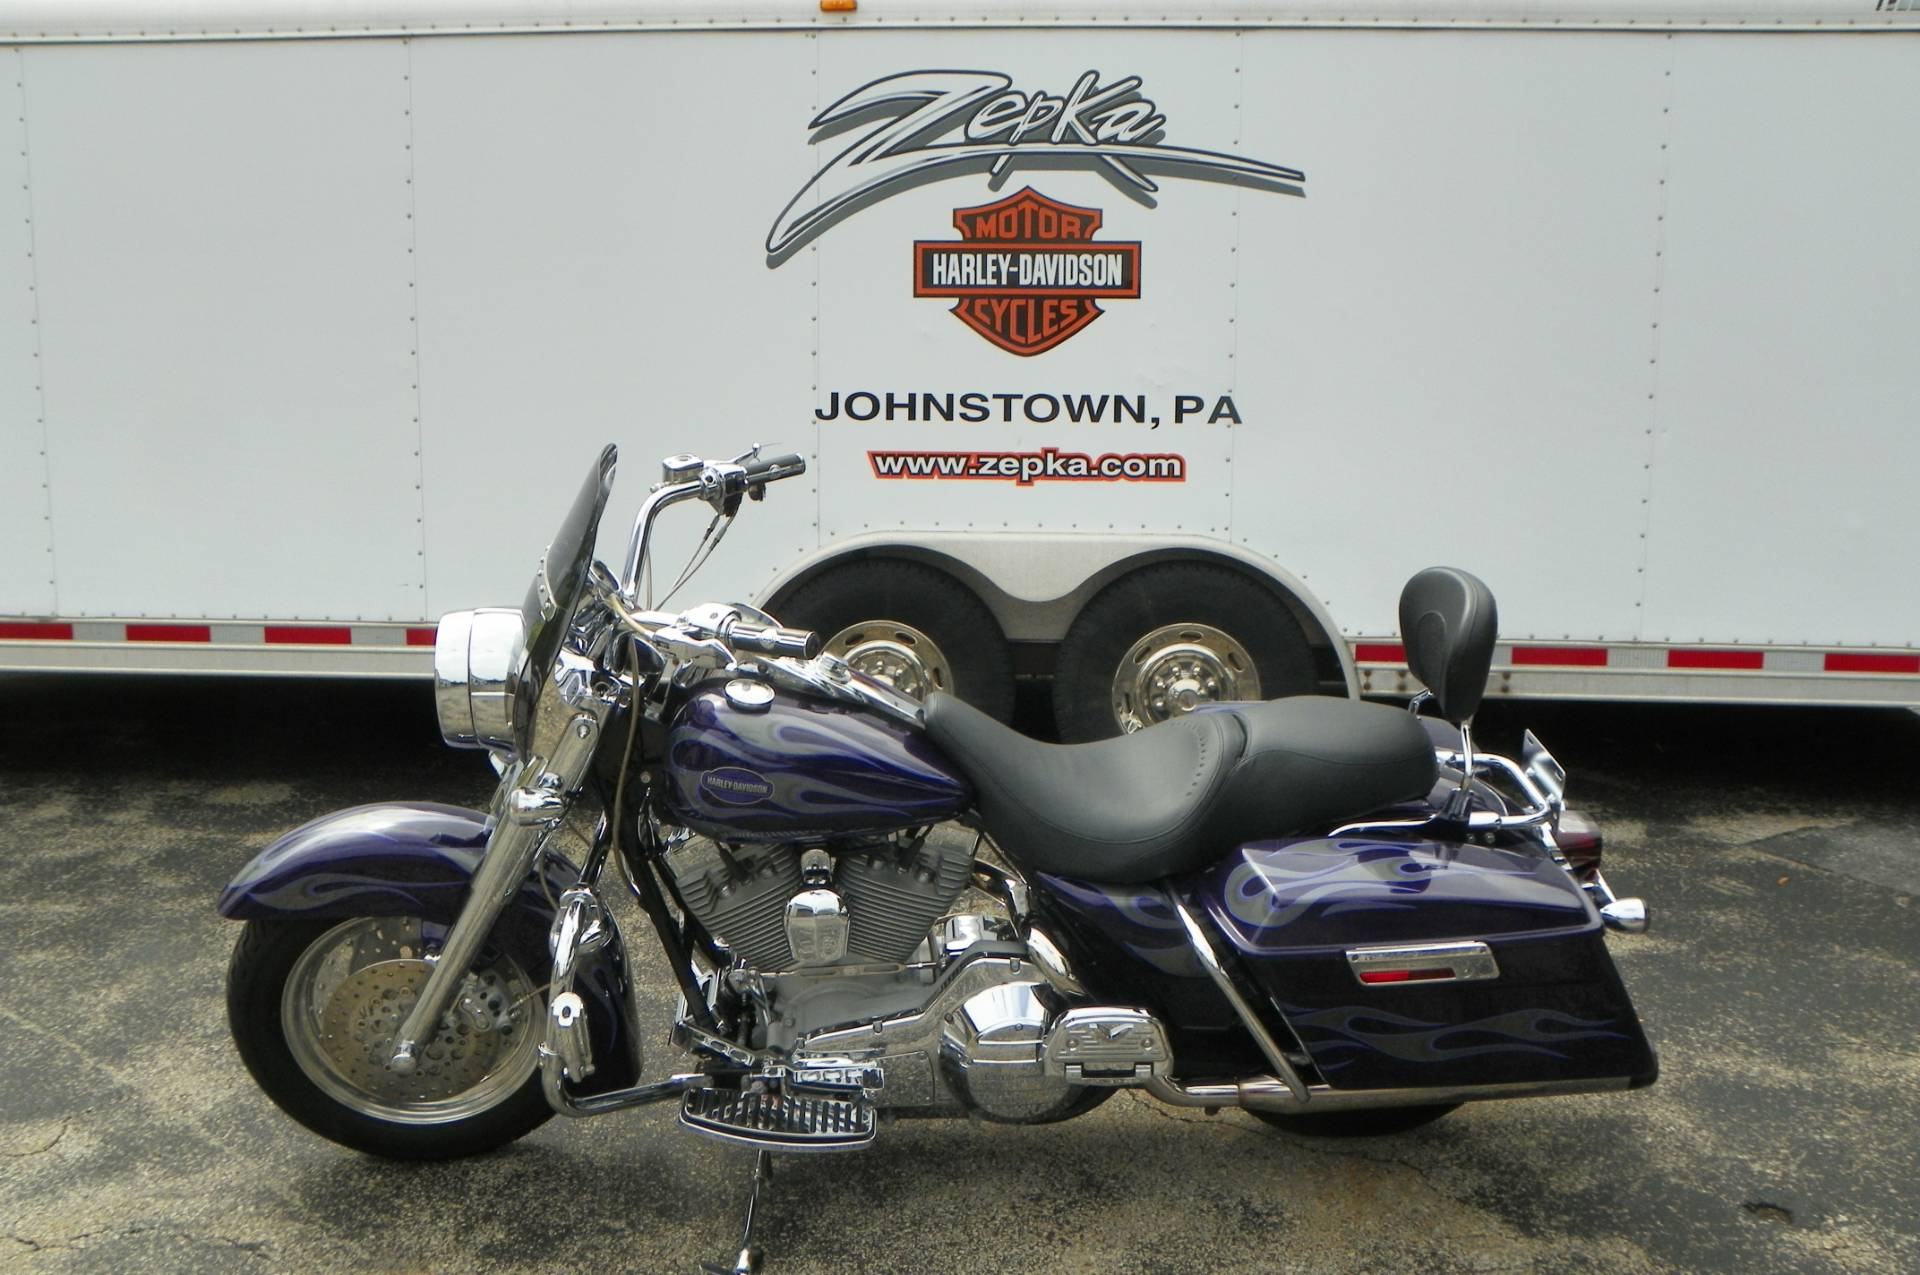 2002 Harley-Davidson Road King Screamin' Eagle in Johnstown, Pennsylvania - Photo 8